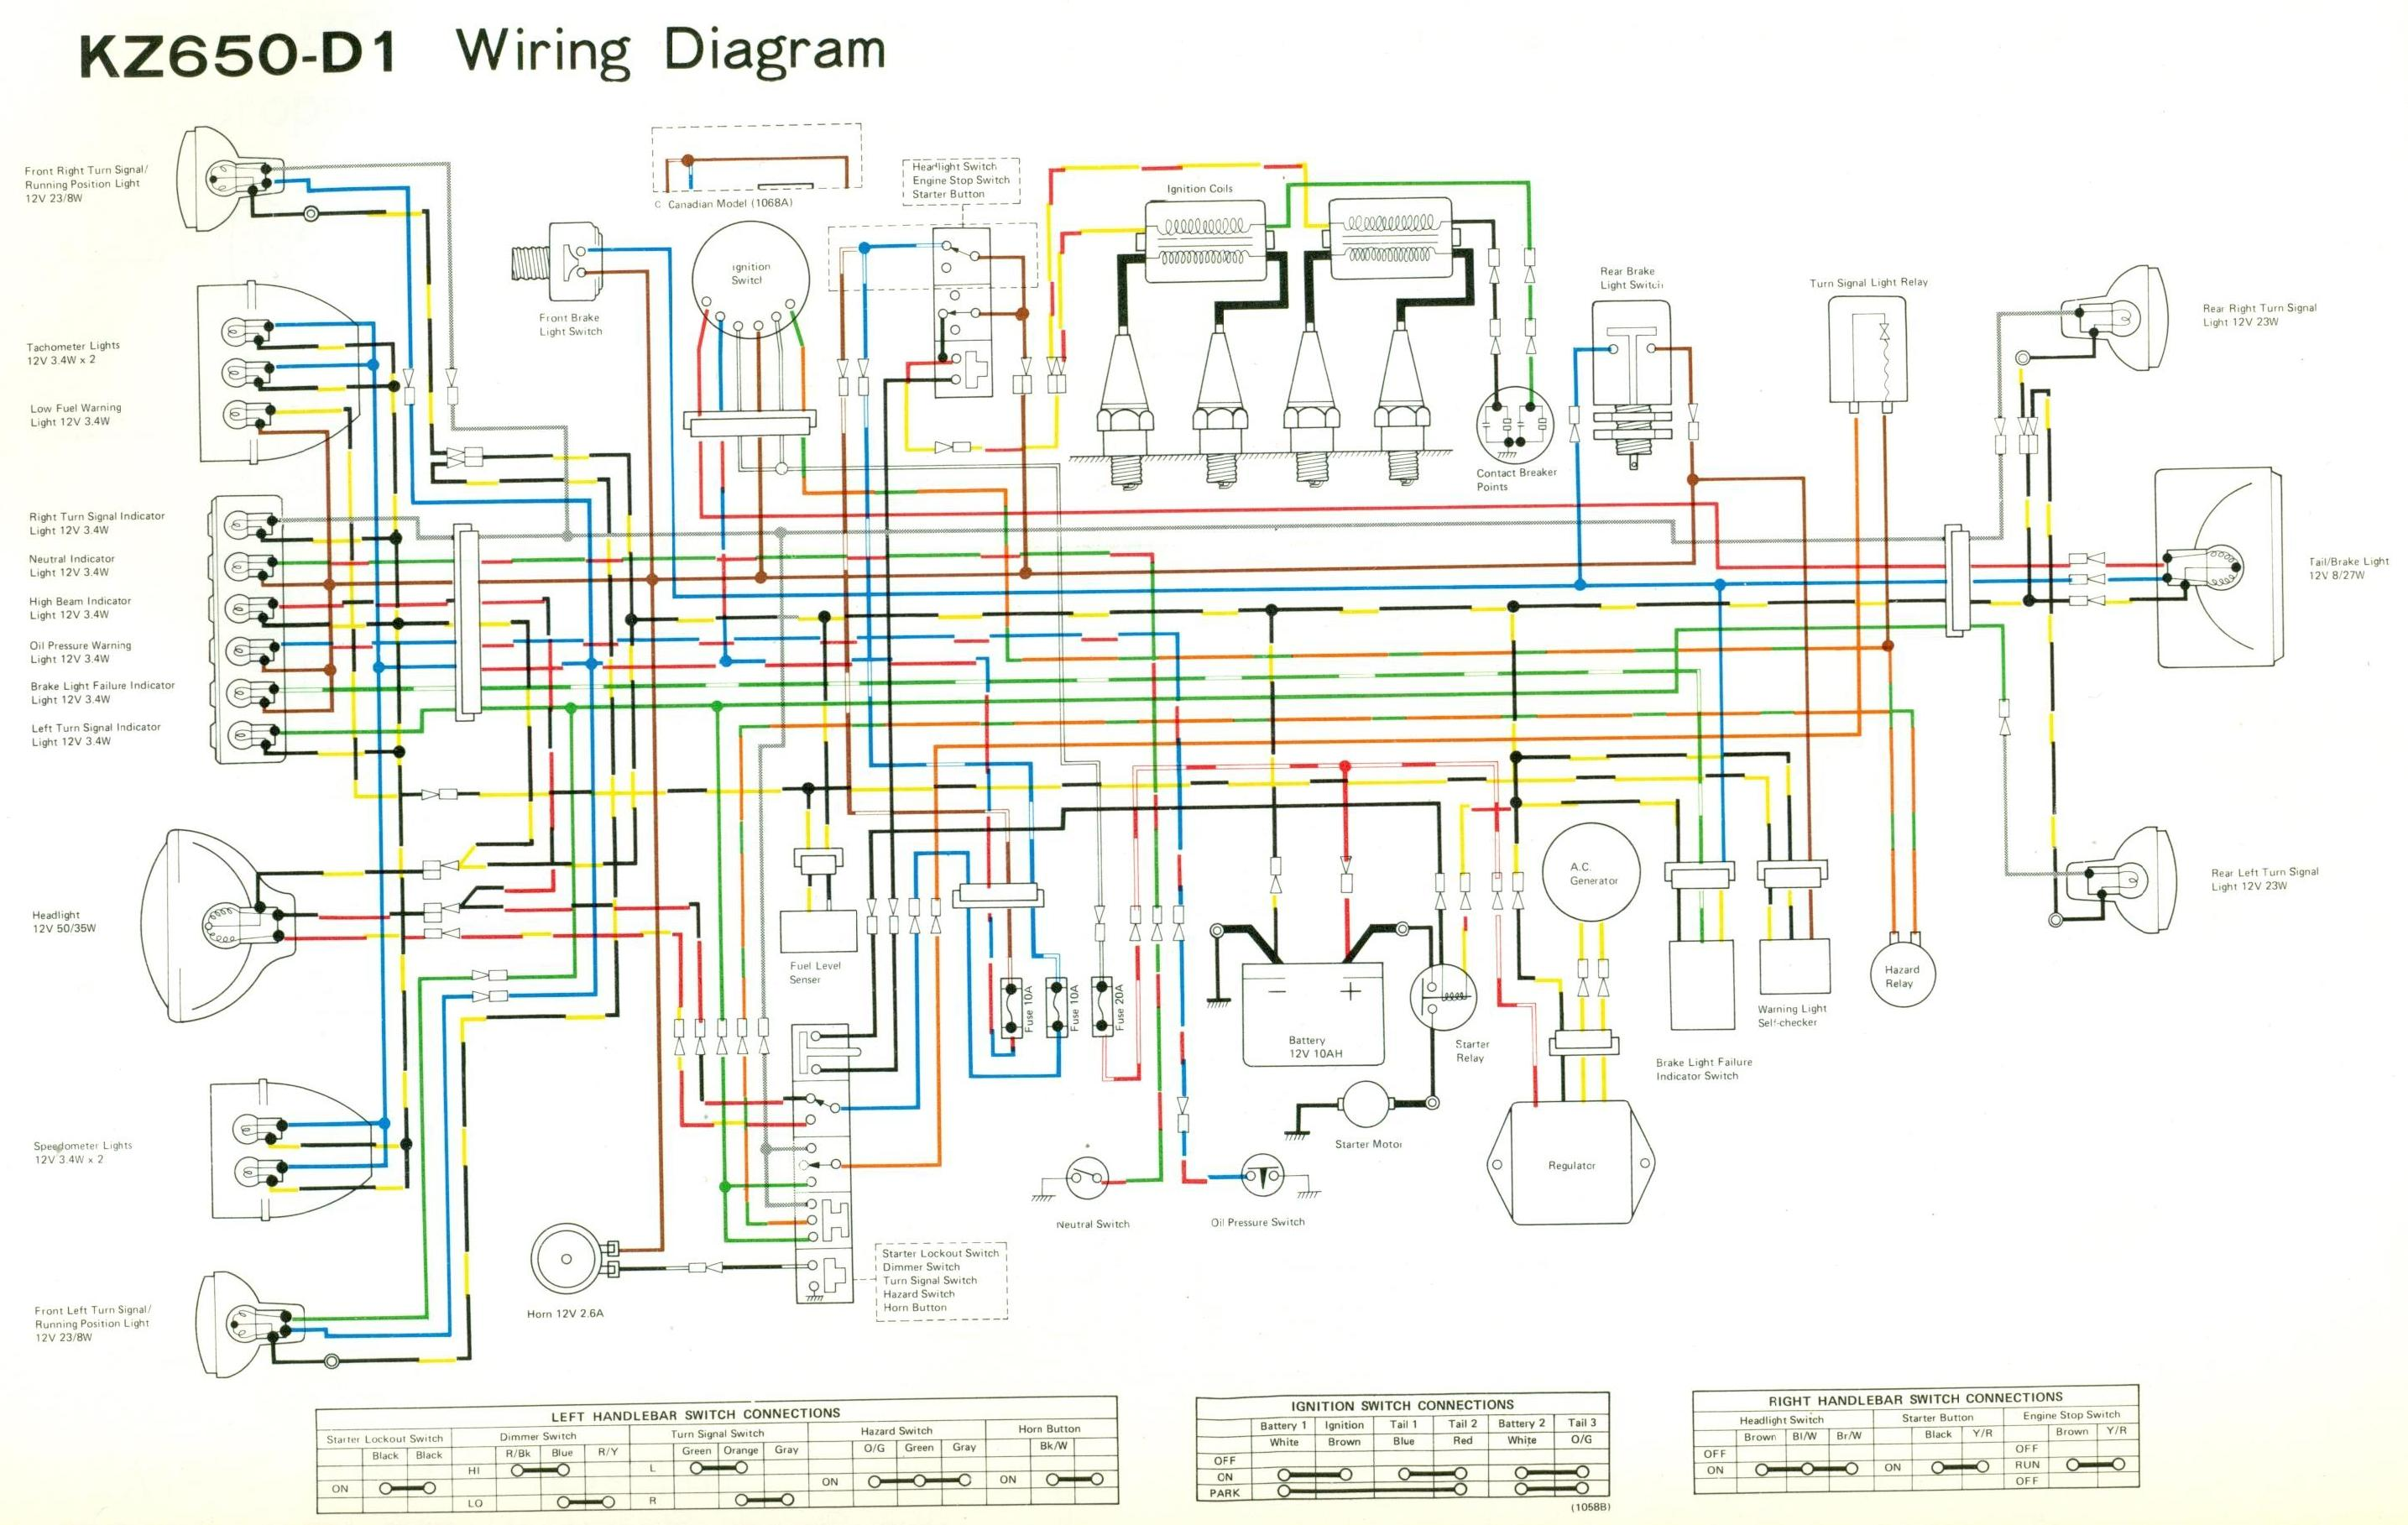 Wiring Diagrams 1980 Chevy Ignition Diagram Kz650 D